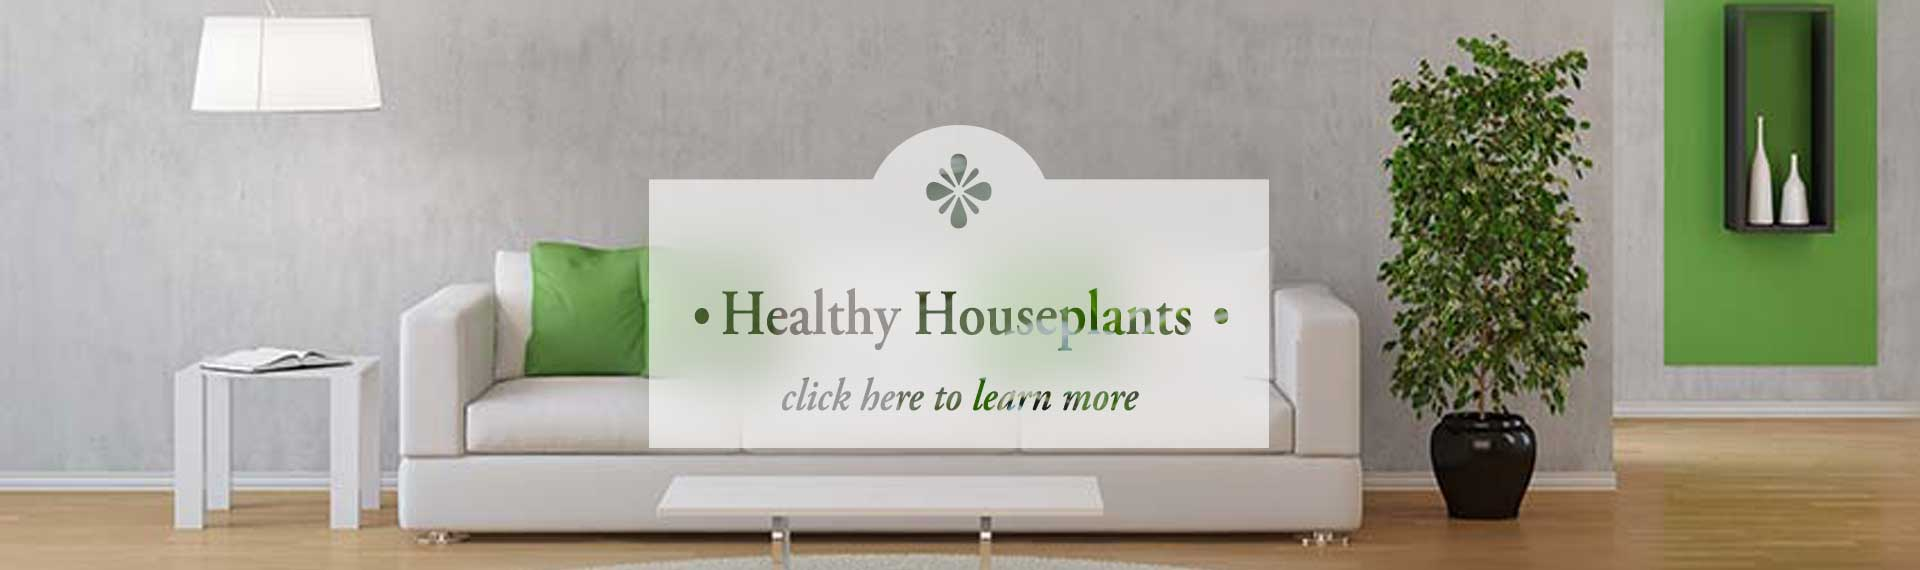 HousePlants_FROSTED